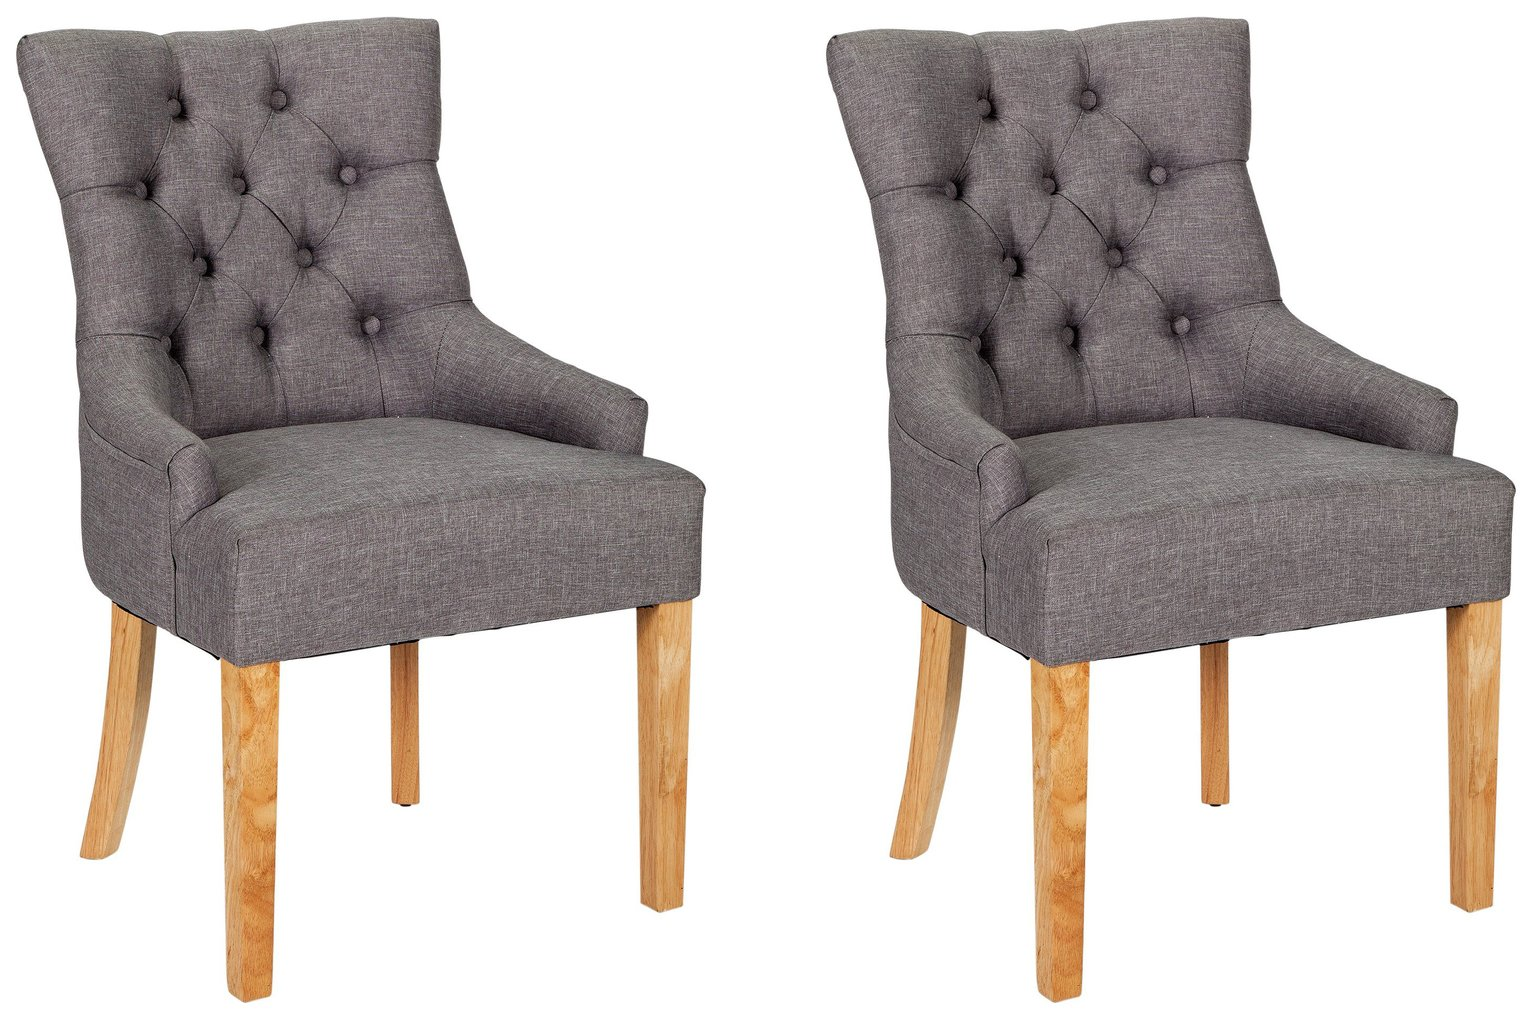 dining chairs chair rail paint ideas buy argos home pair of cherwell charcoal